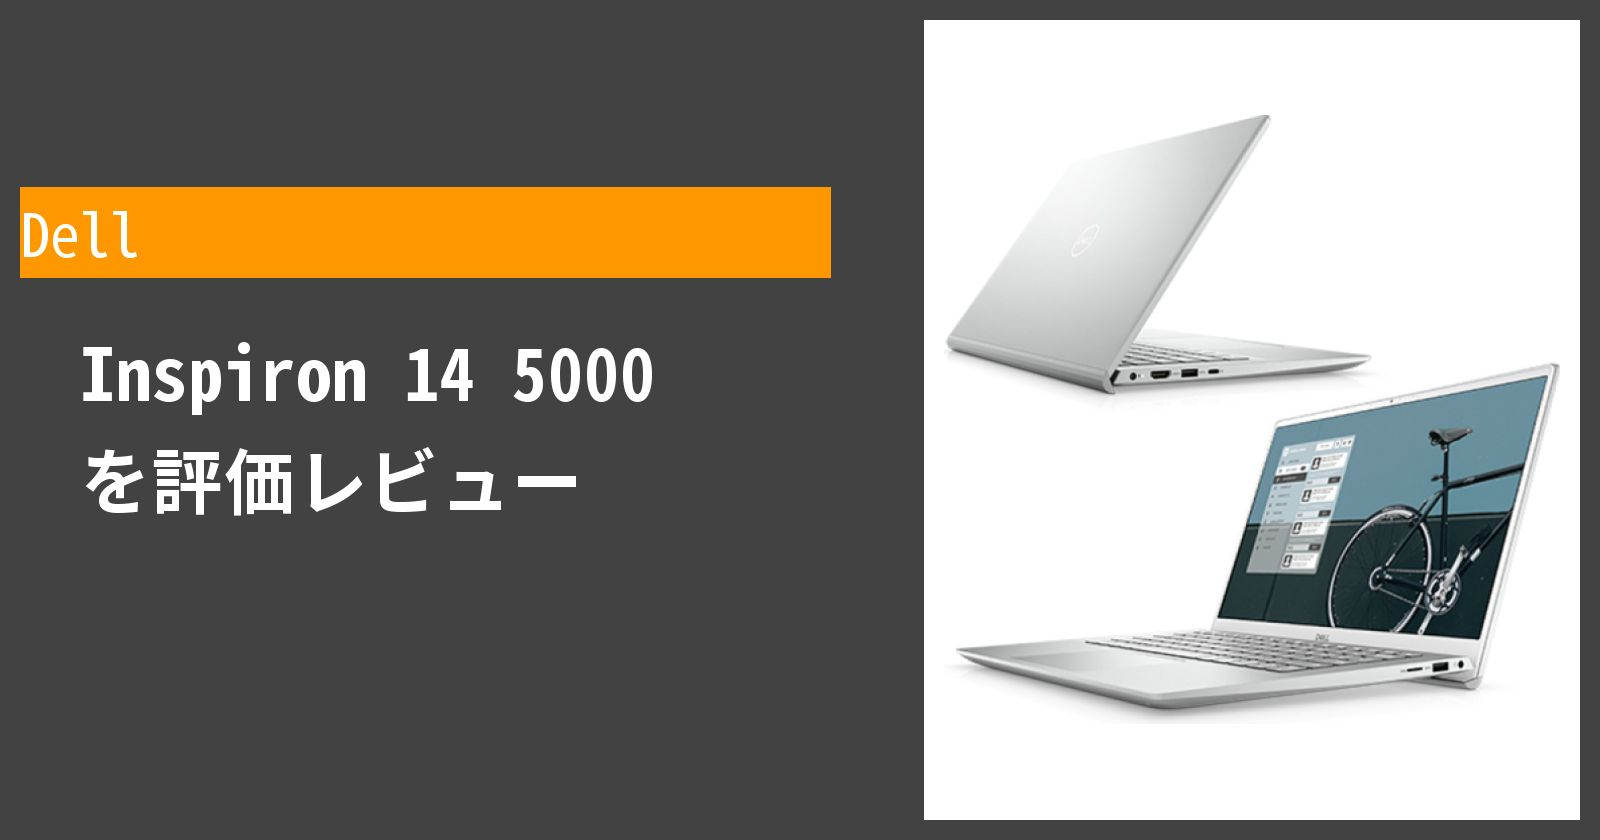 Inspiron 14 5000を徹底評価